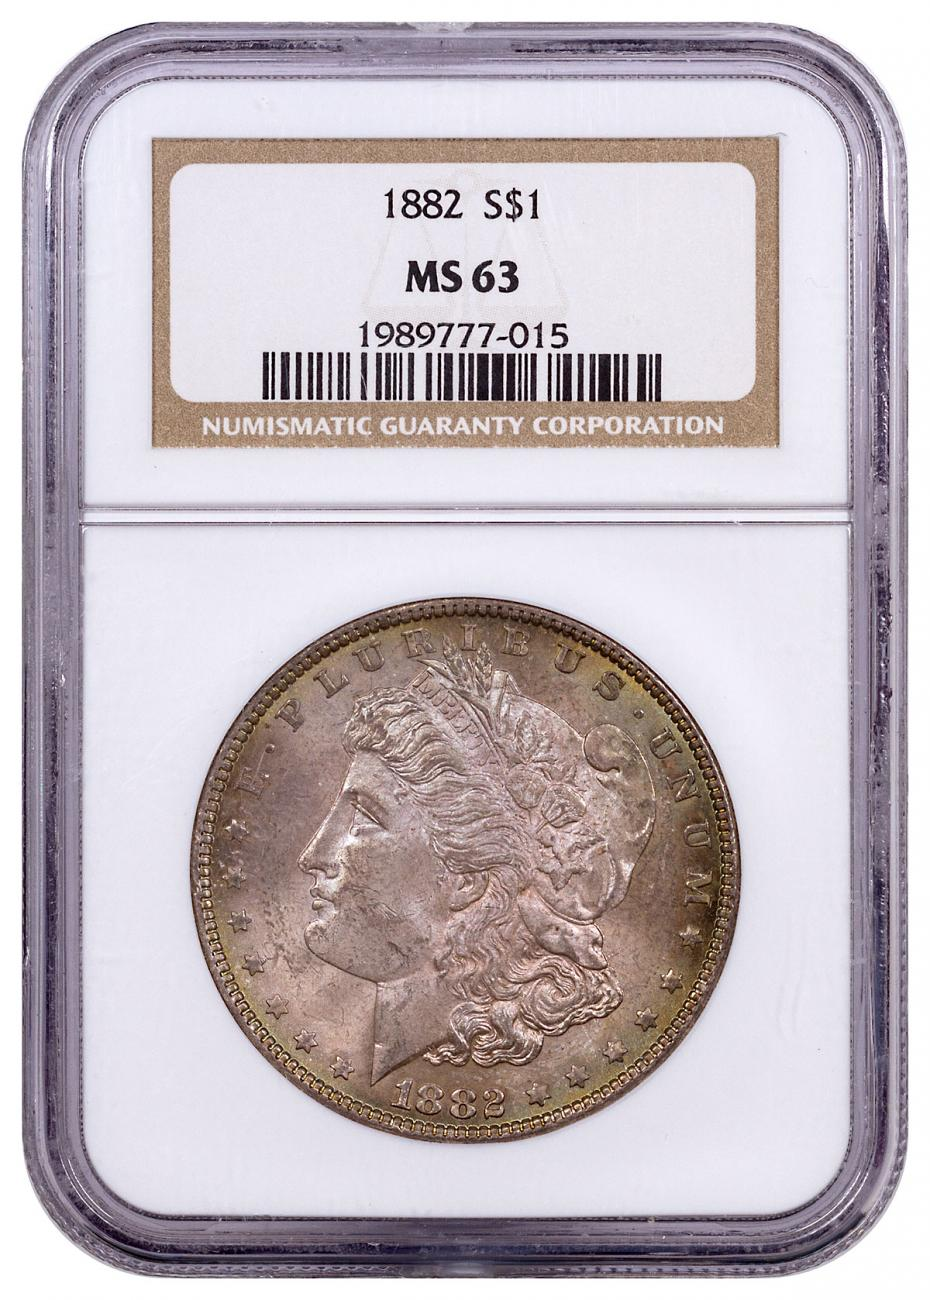 1882 Morgan Silver Dollar Toned NGC MS63